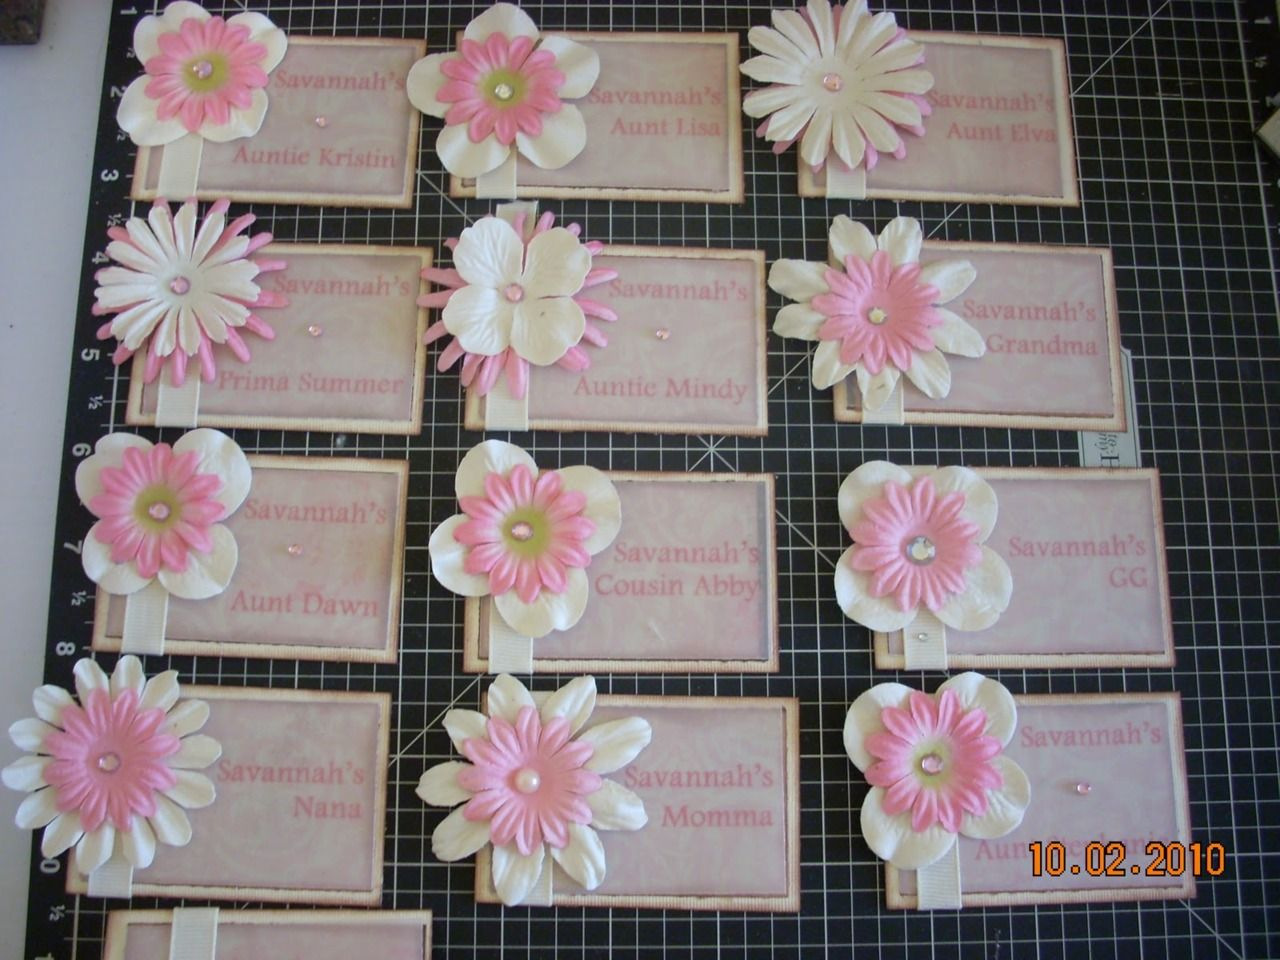 pnm name tag ideas scrapbooking paper flowers are good materials to work with tags - Name Tag Design Ideas